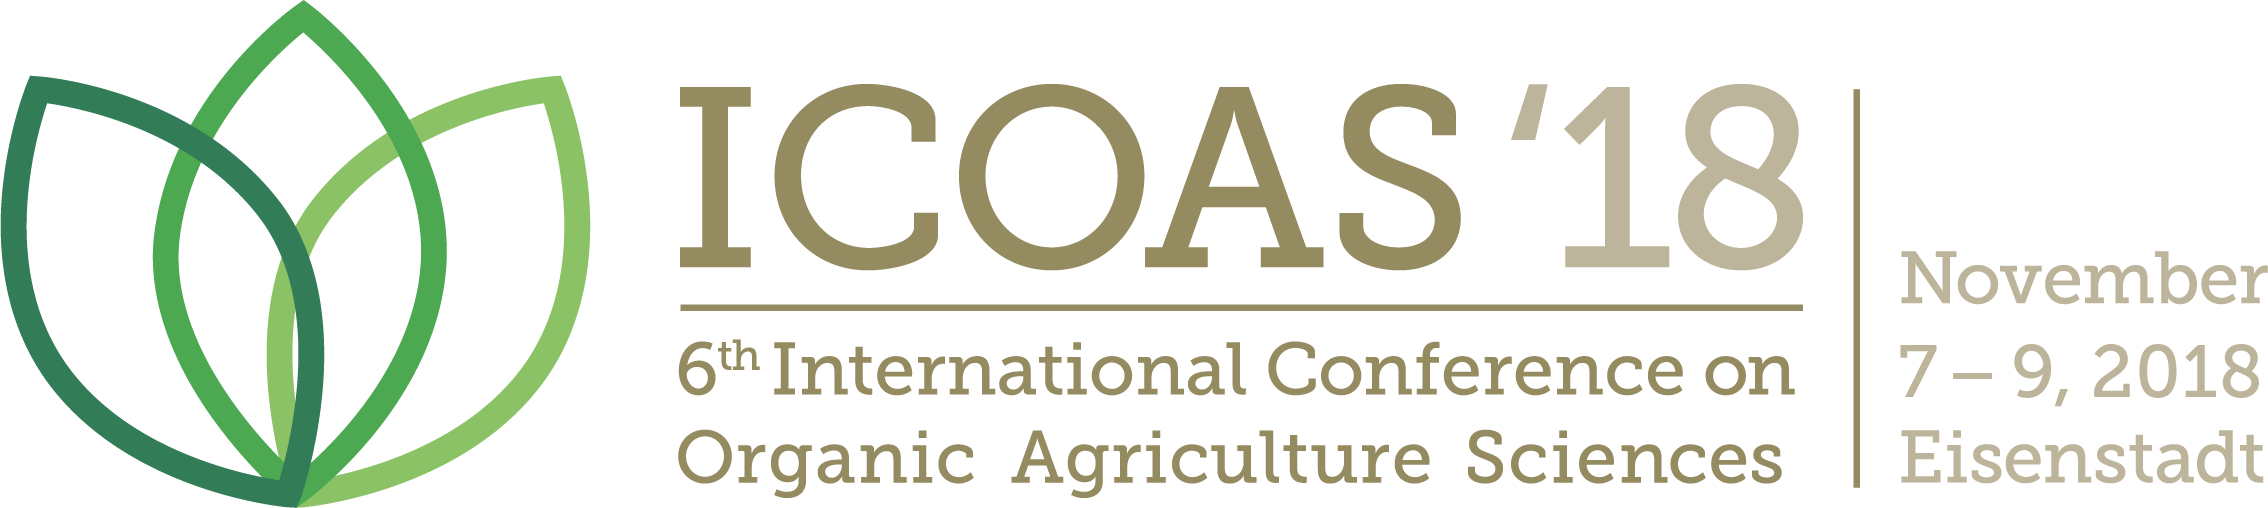 6th International Conference on Organic Agriculture Sciences (ICOAS);